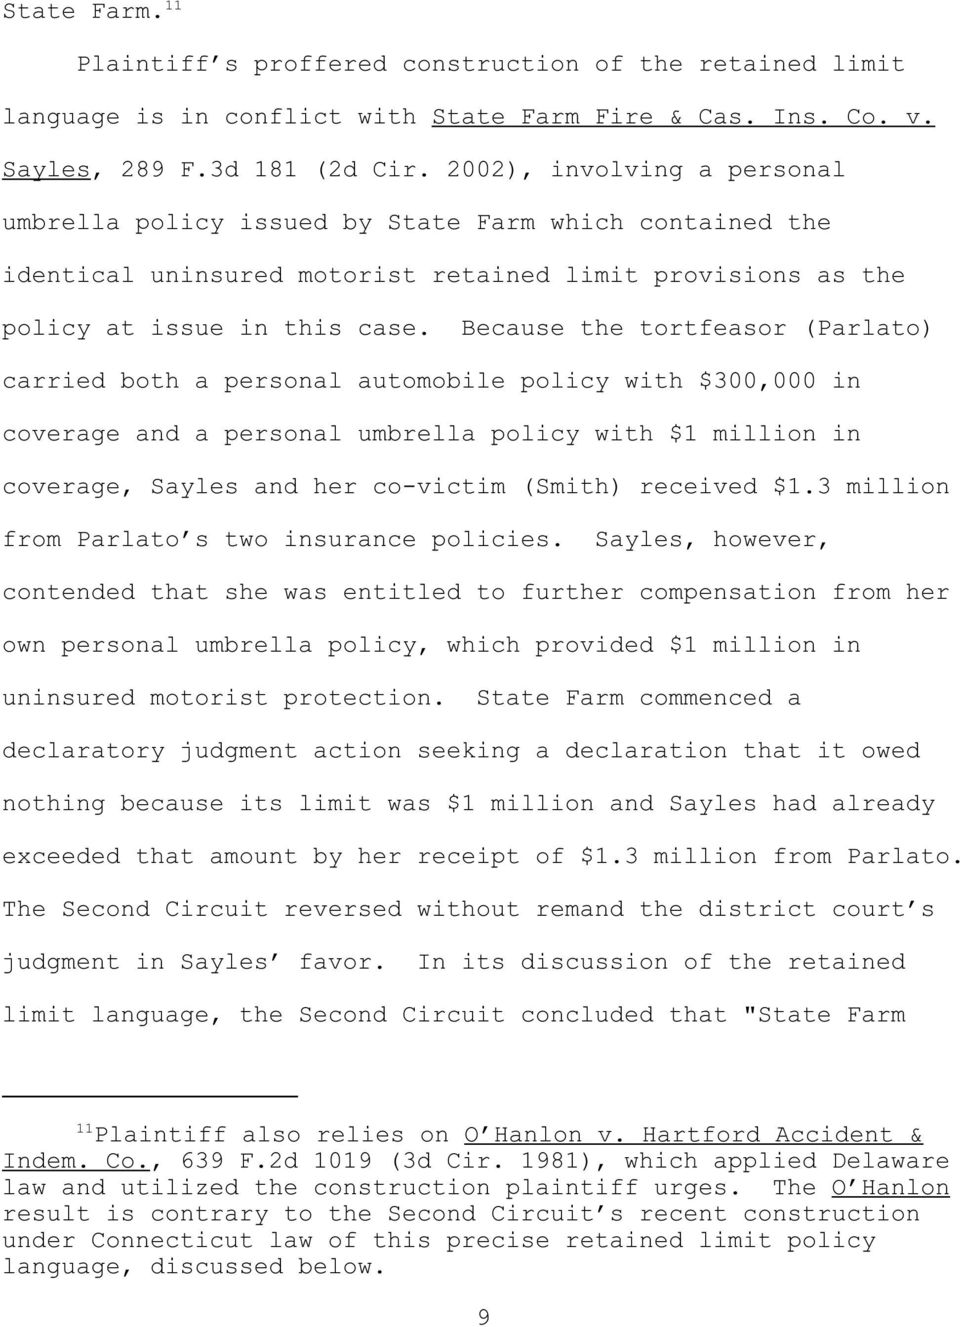 Because the tortfeasor (Parlato) carried both a personal automobile policy with $300,000 in coverage and a personal umbrella policy with $1 million in coverage, Sayles and her co-victim (Smith)